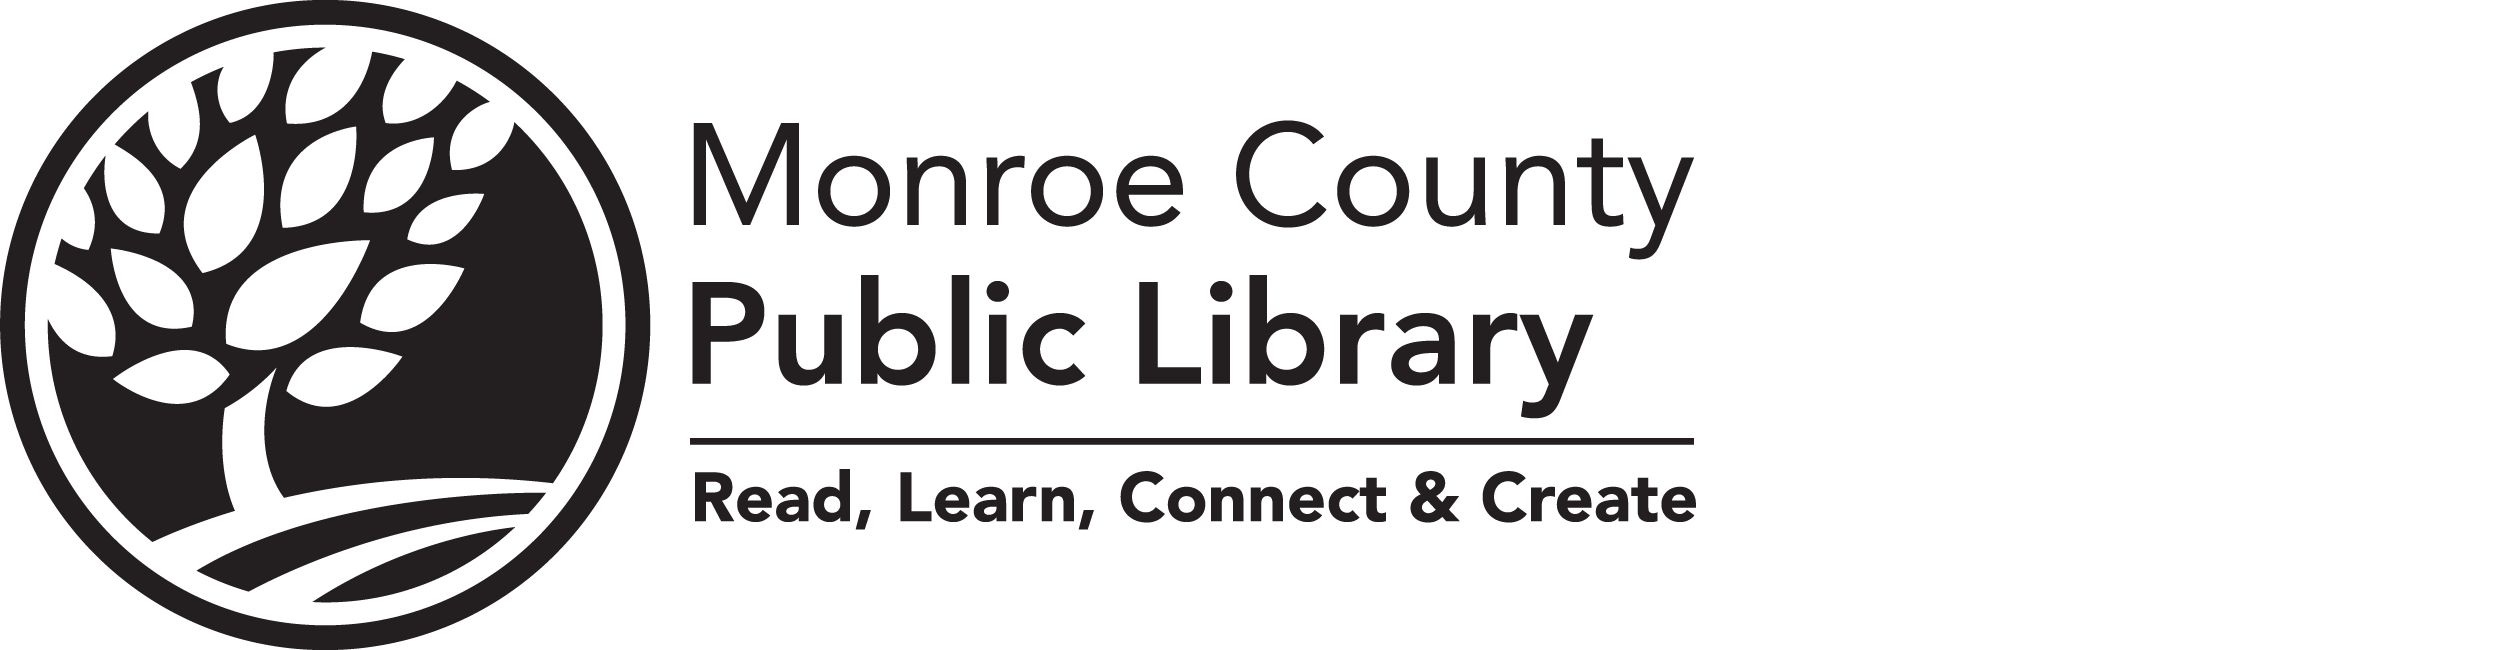 Monroe County Public Library